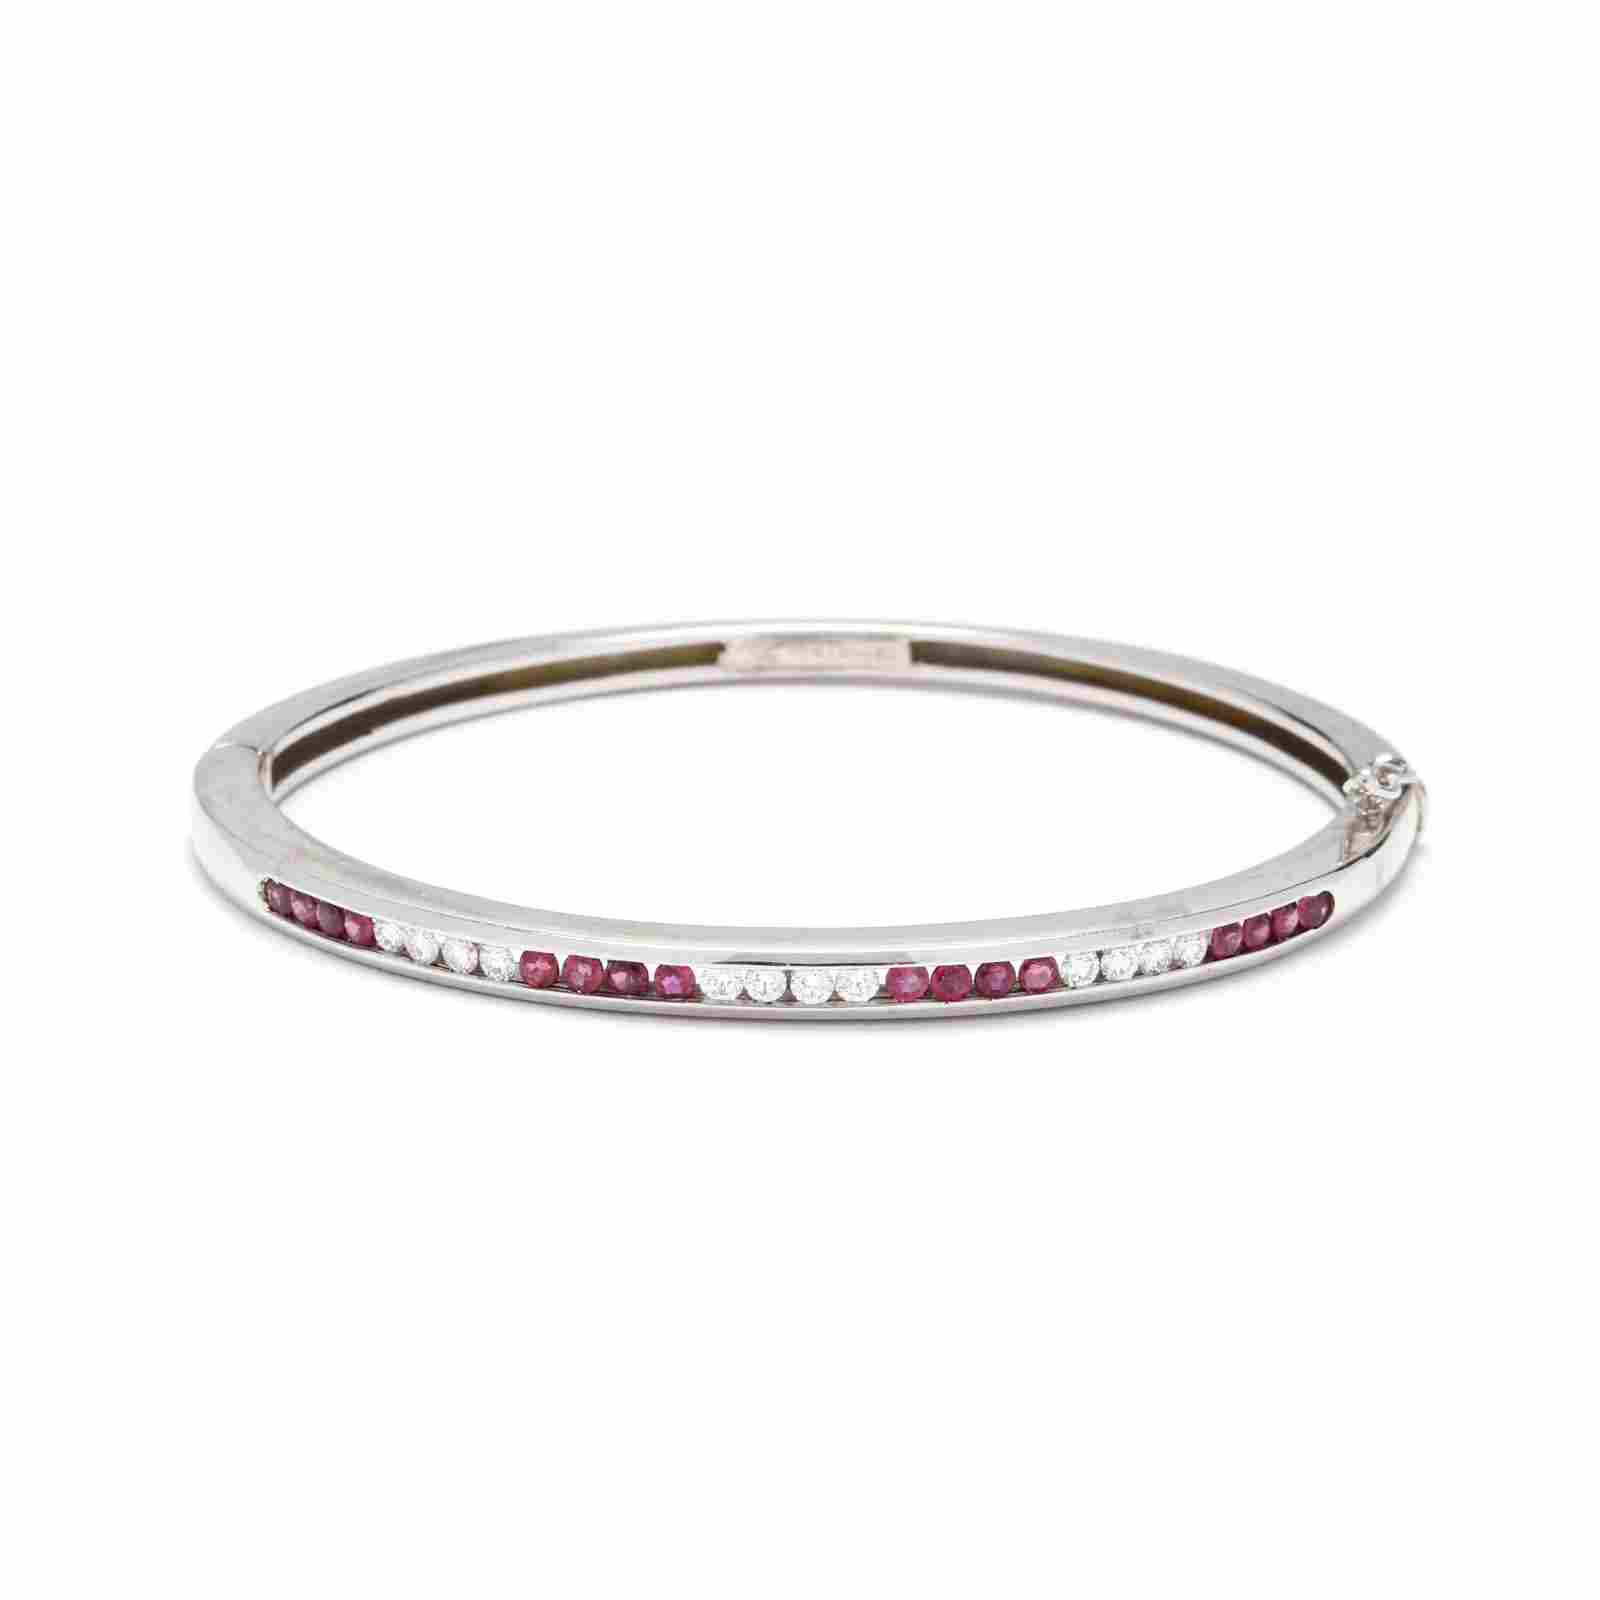 18KT White Gold, Ruby, and Diamond Bangle Bracelet,